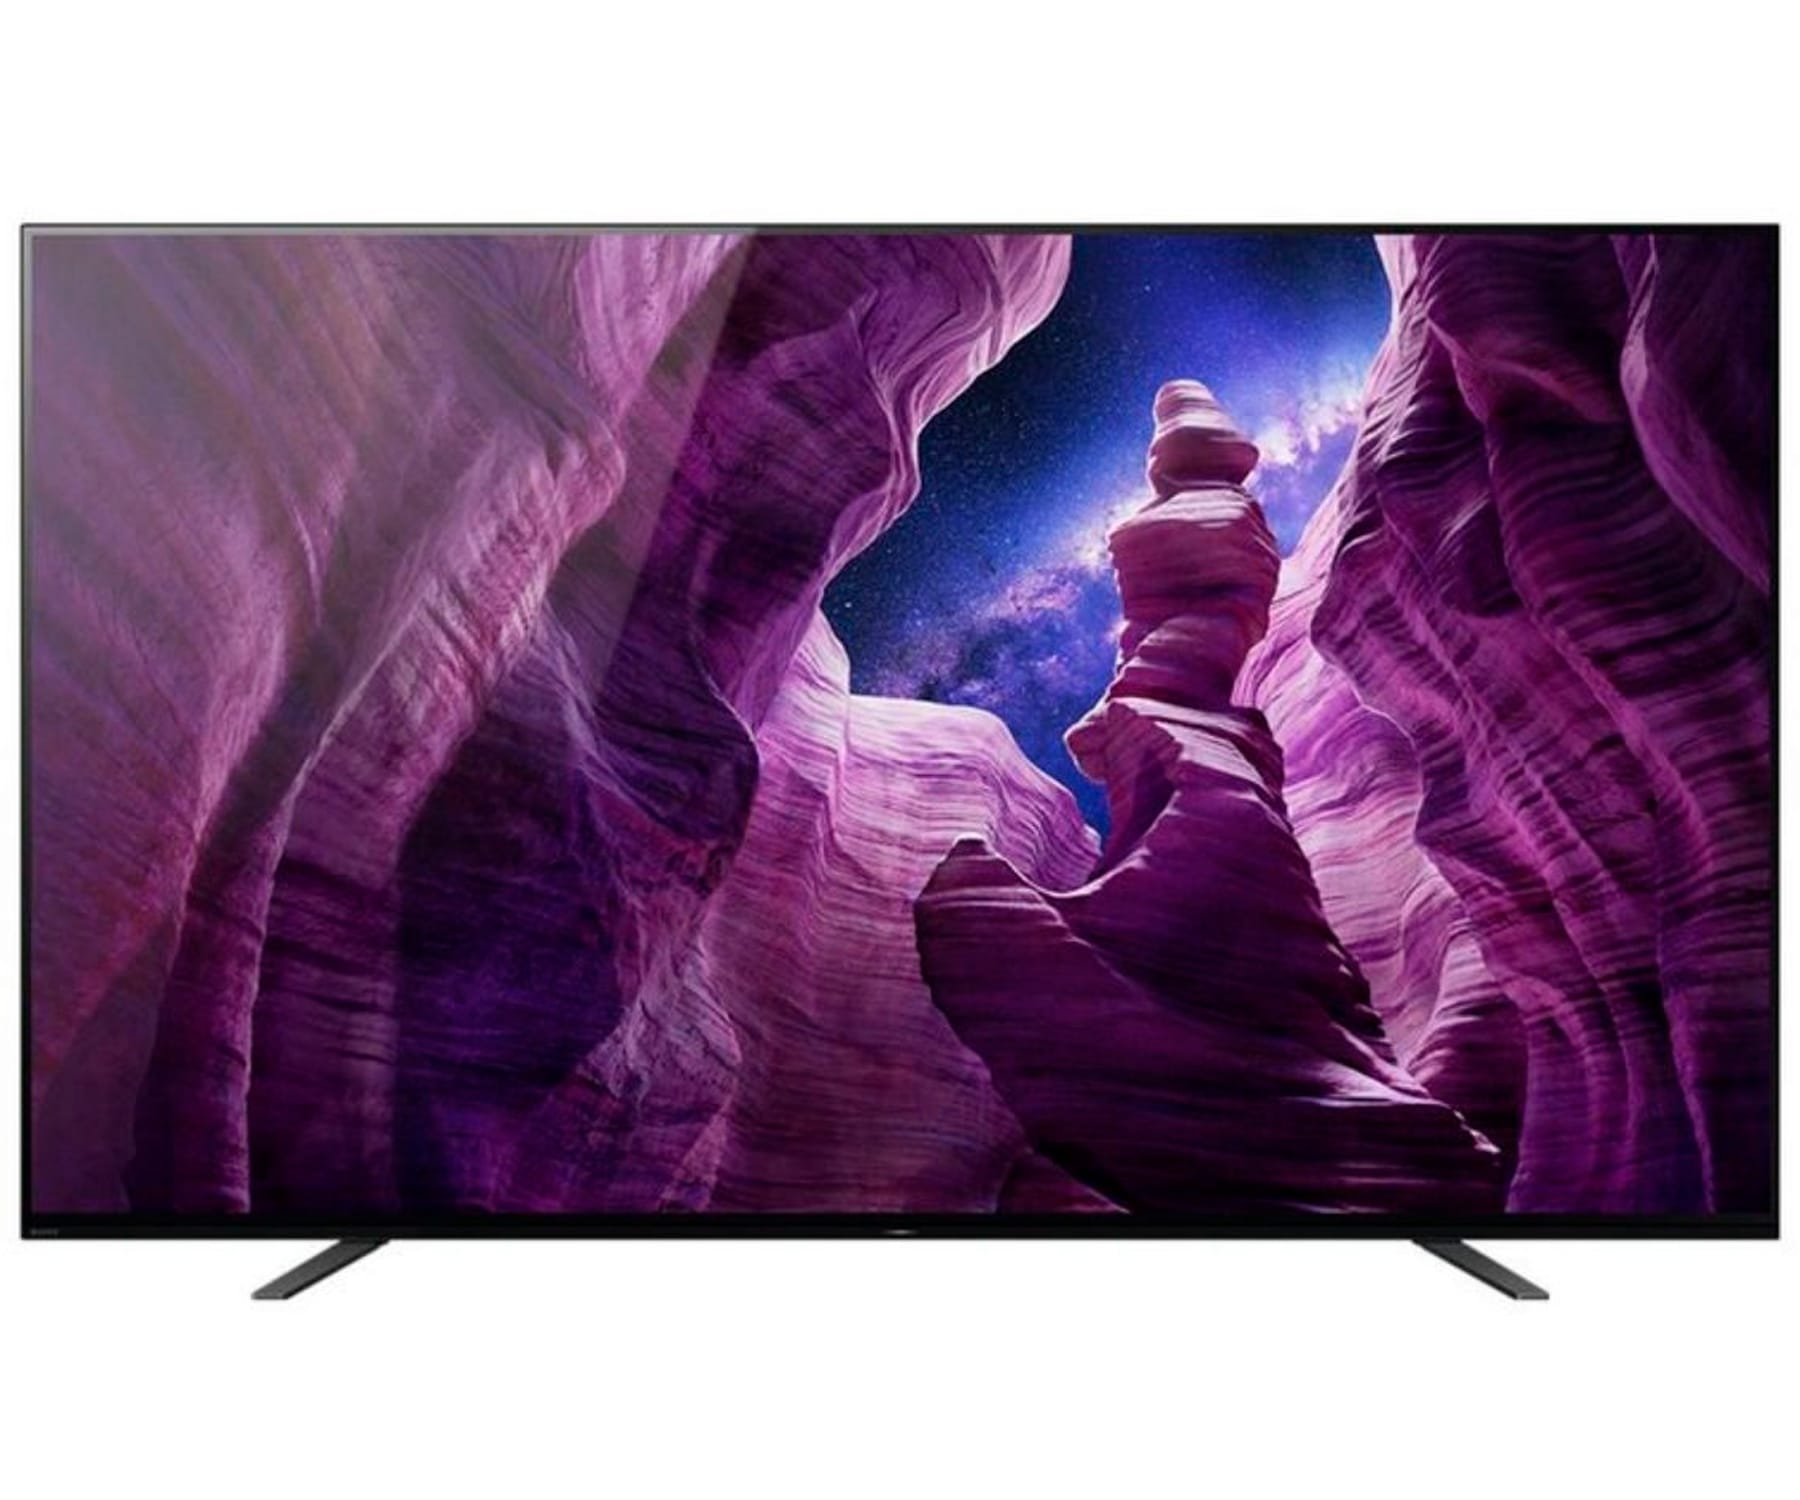 SONY KD-55A8 TELEVISOR 55'' OLED UHD 4K HDR SMART TV ANDROID TV WIFI BLUETOOTH